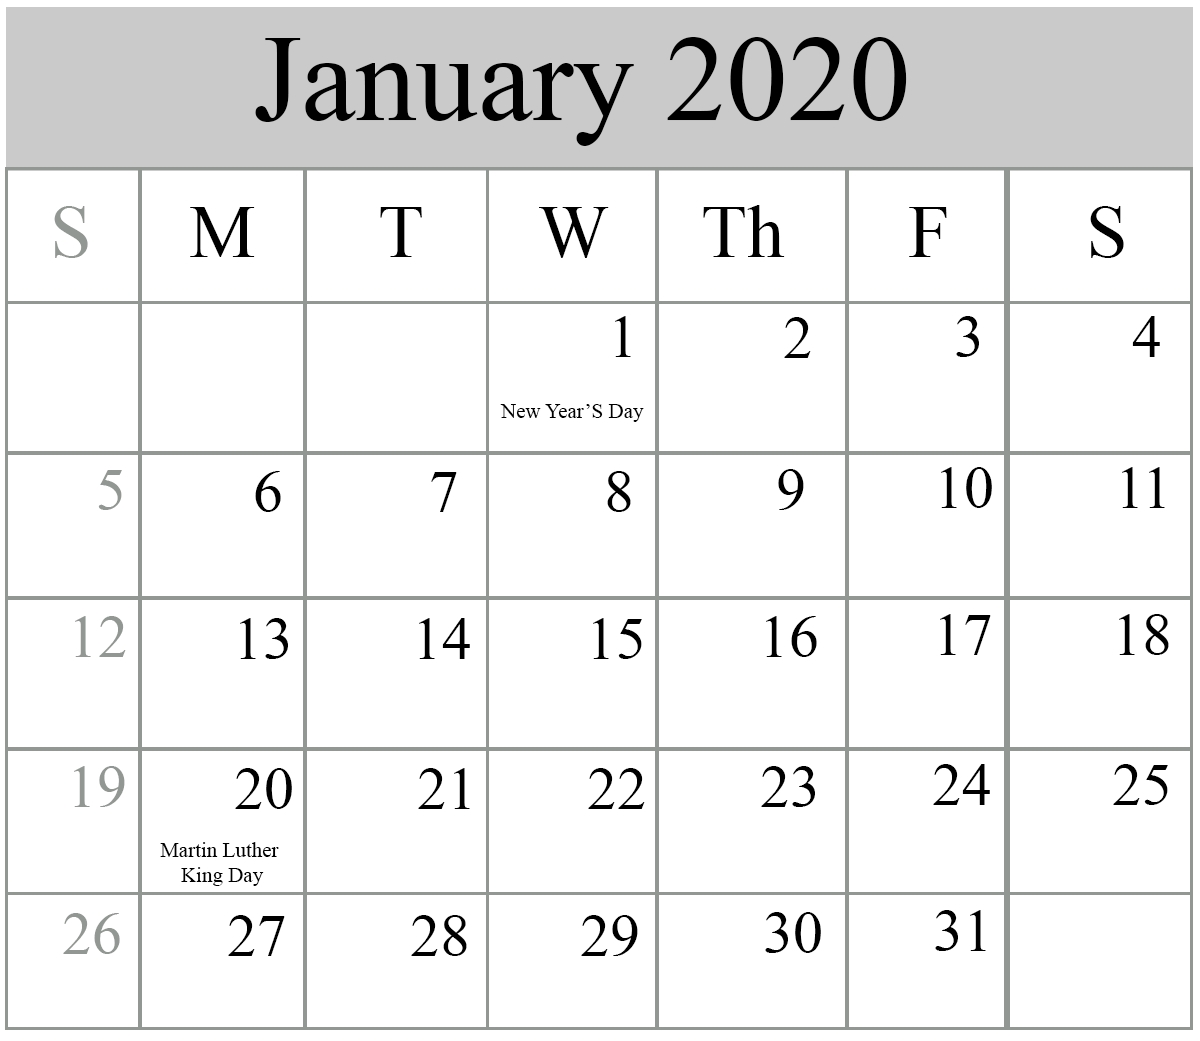 Calendar 2020 January - March 2020 Printable Monthly Calendar-January 2020 Calendar Tithi